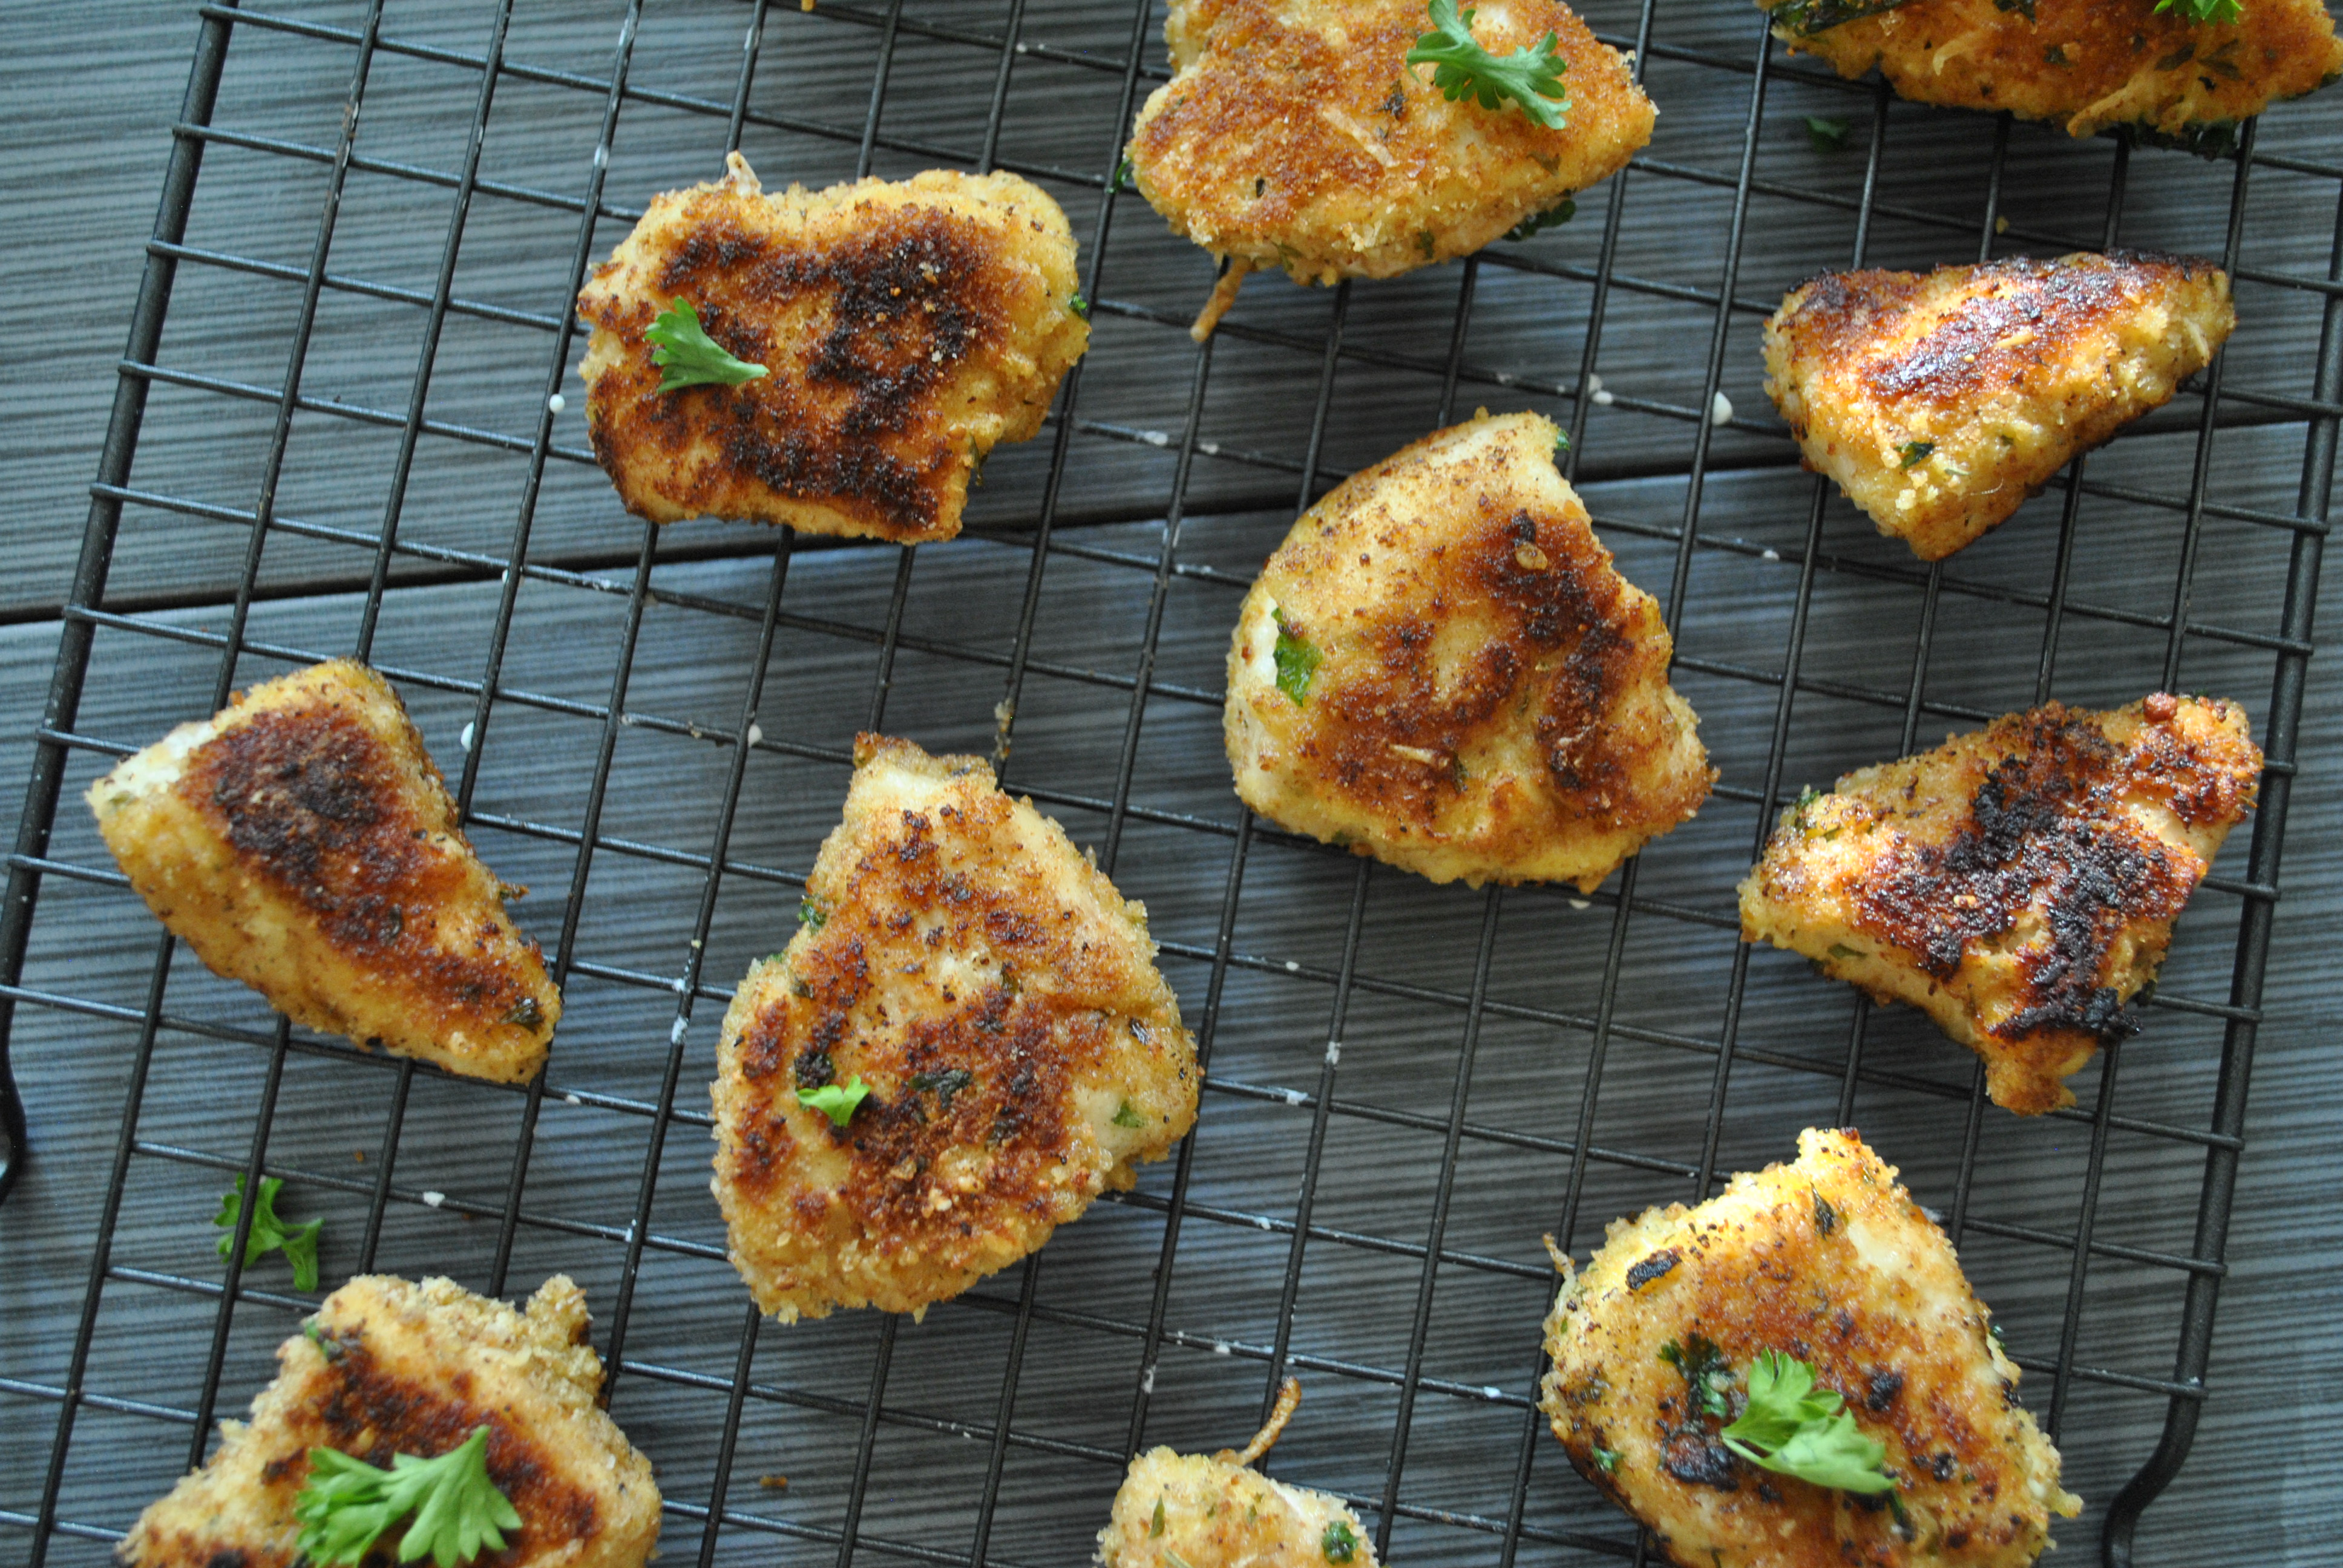 Lifestyle Blogger Chocolate and Lace shares her recipe for delicious and healthy chicken nuggets your kids will love.